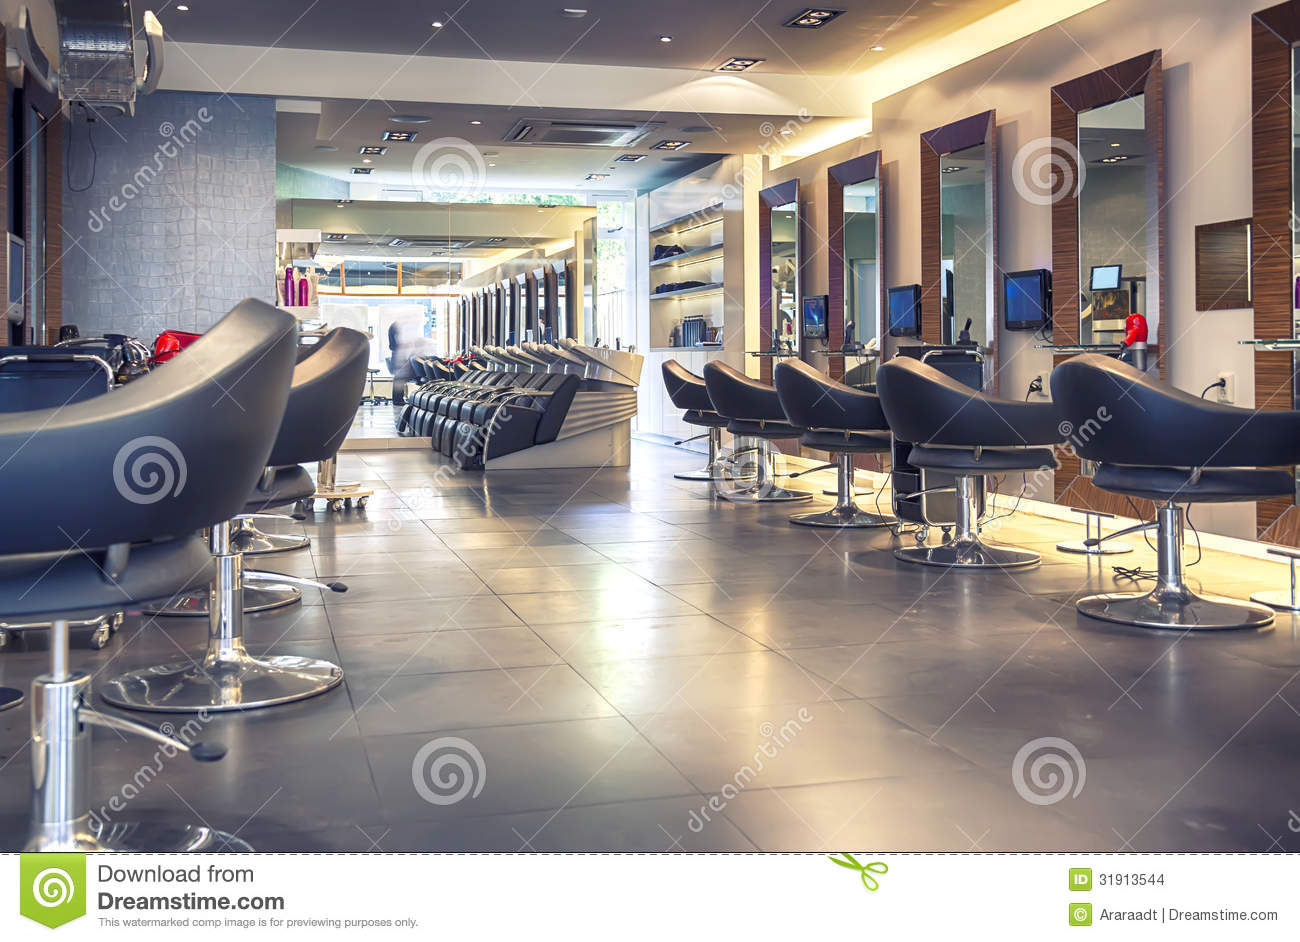 Salon de coiffure moderne photo stock. Image du indoors - 31913544